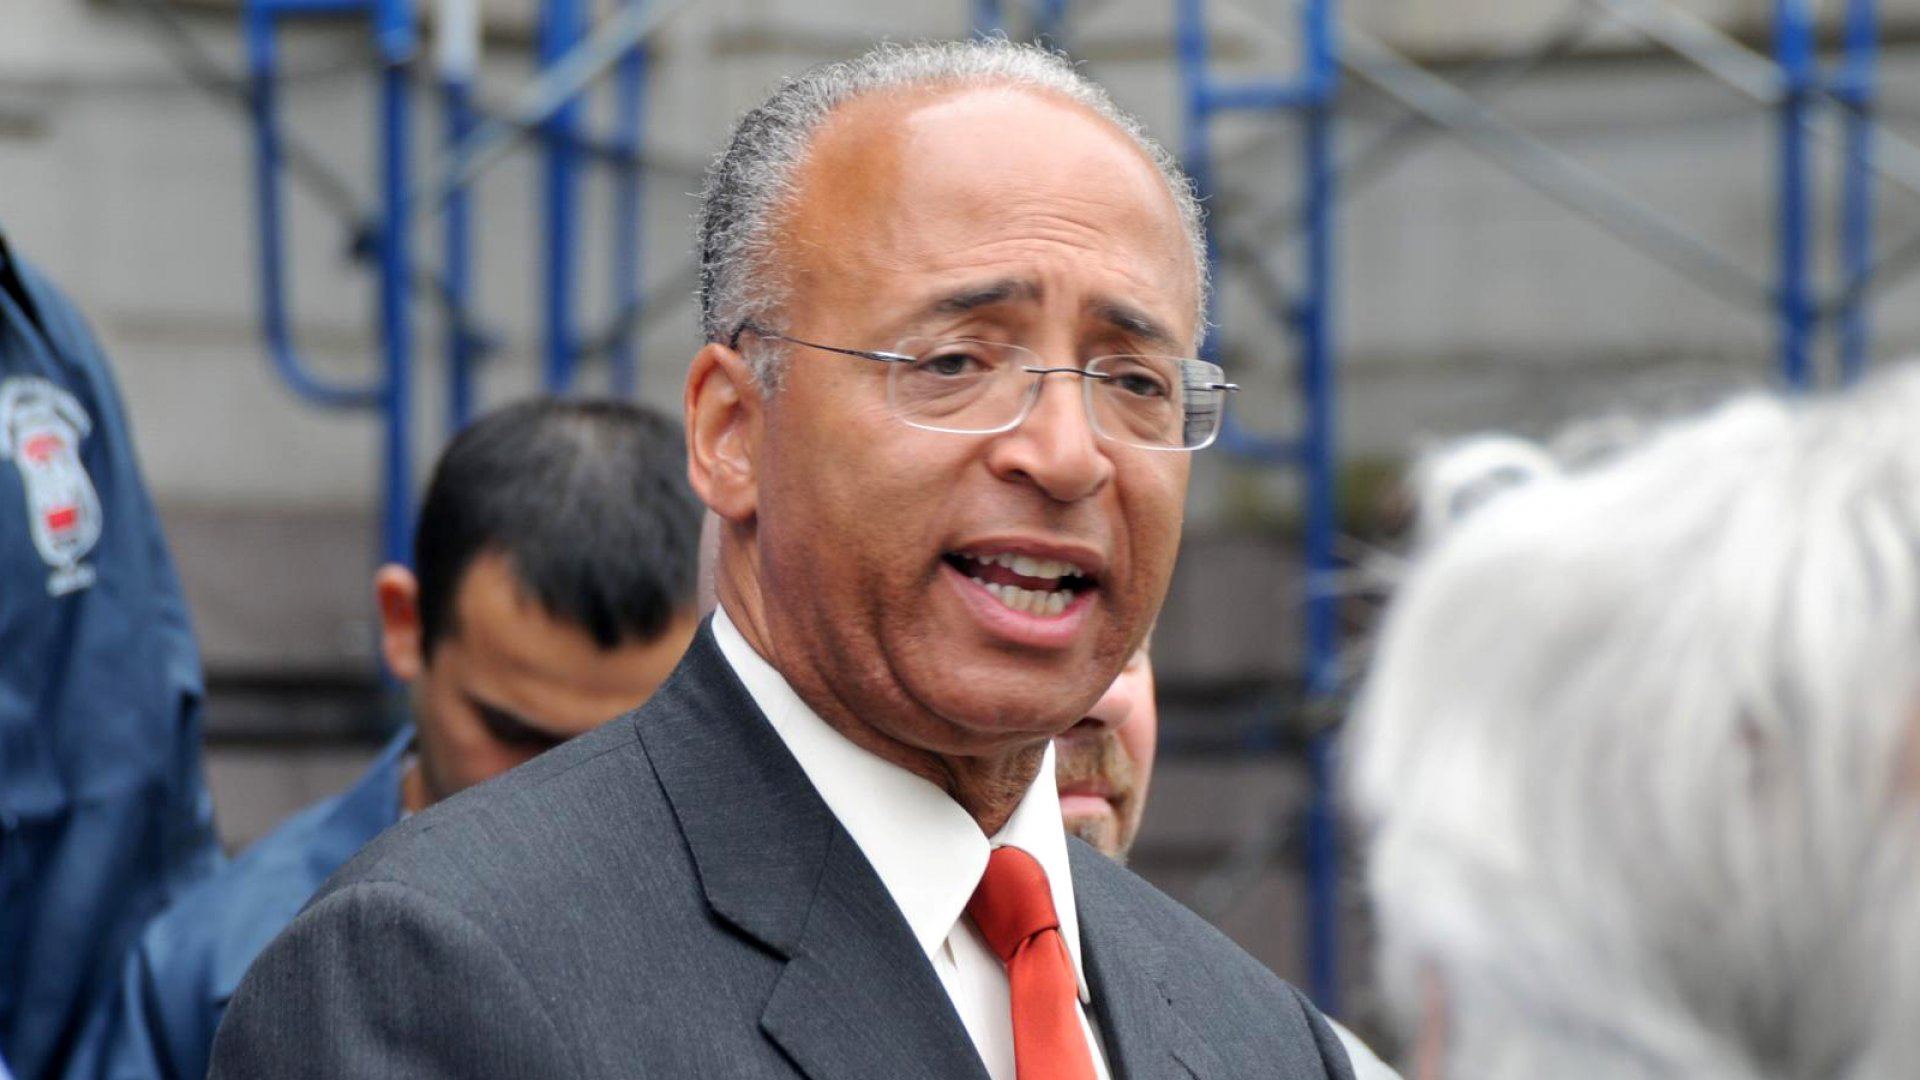 Full Interview: NYC Mayoral Candidate Bill Thompson